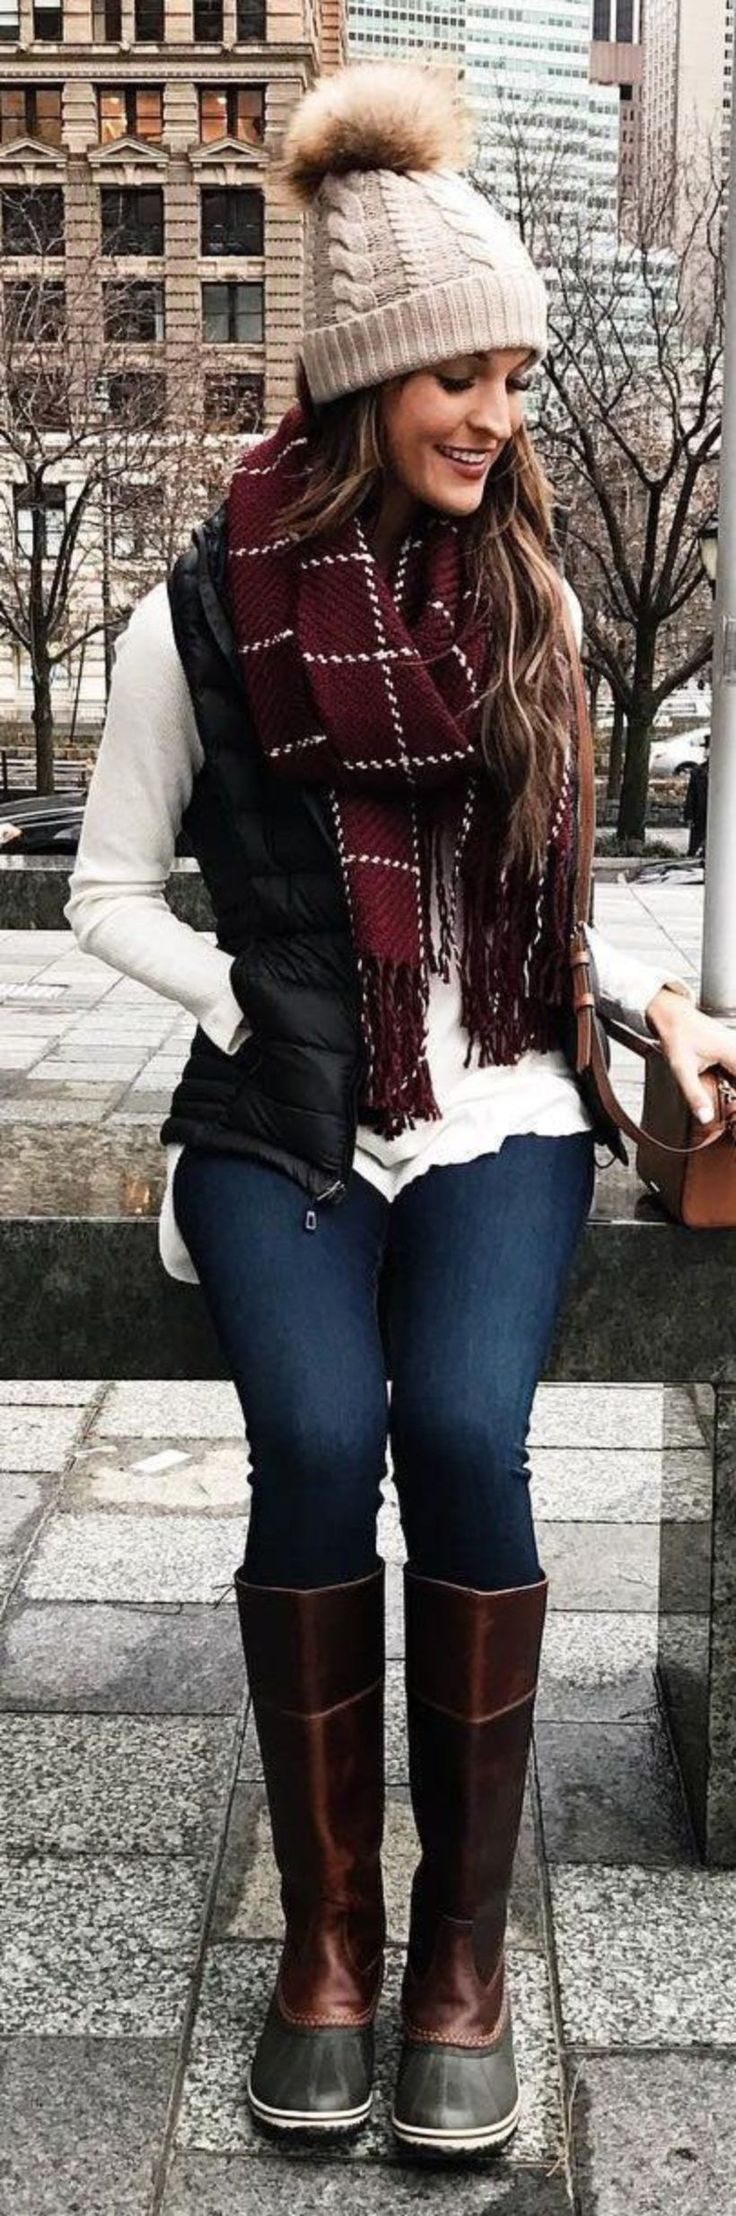 best 25+ classy winter outfits ideas on pinterest | classy outfits